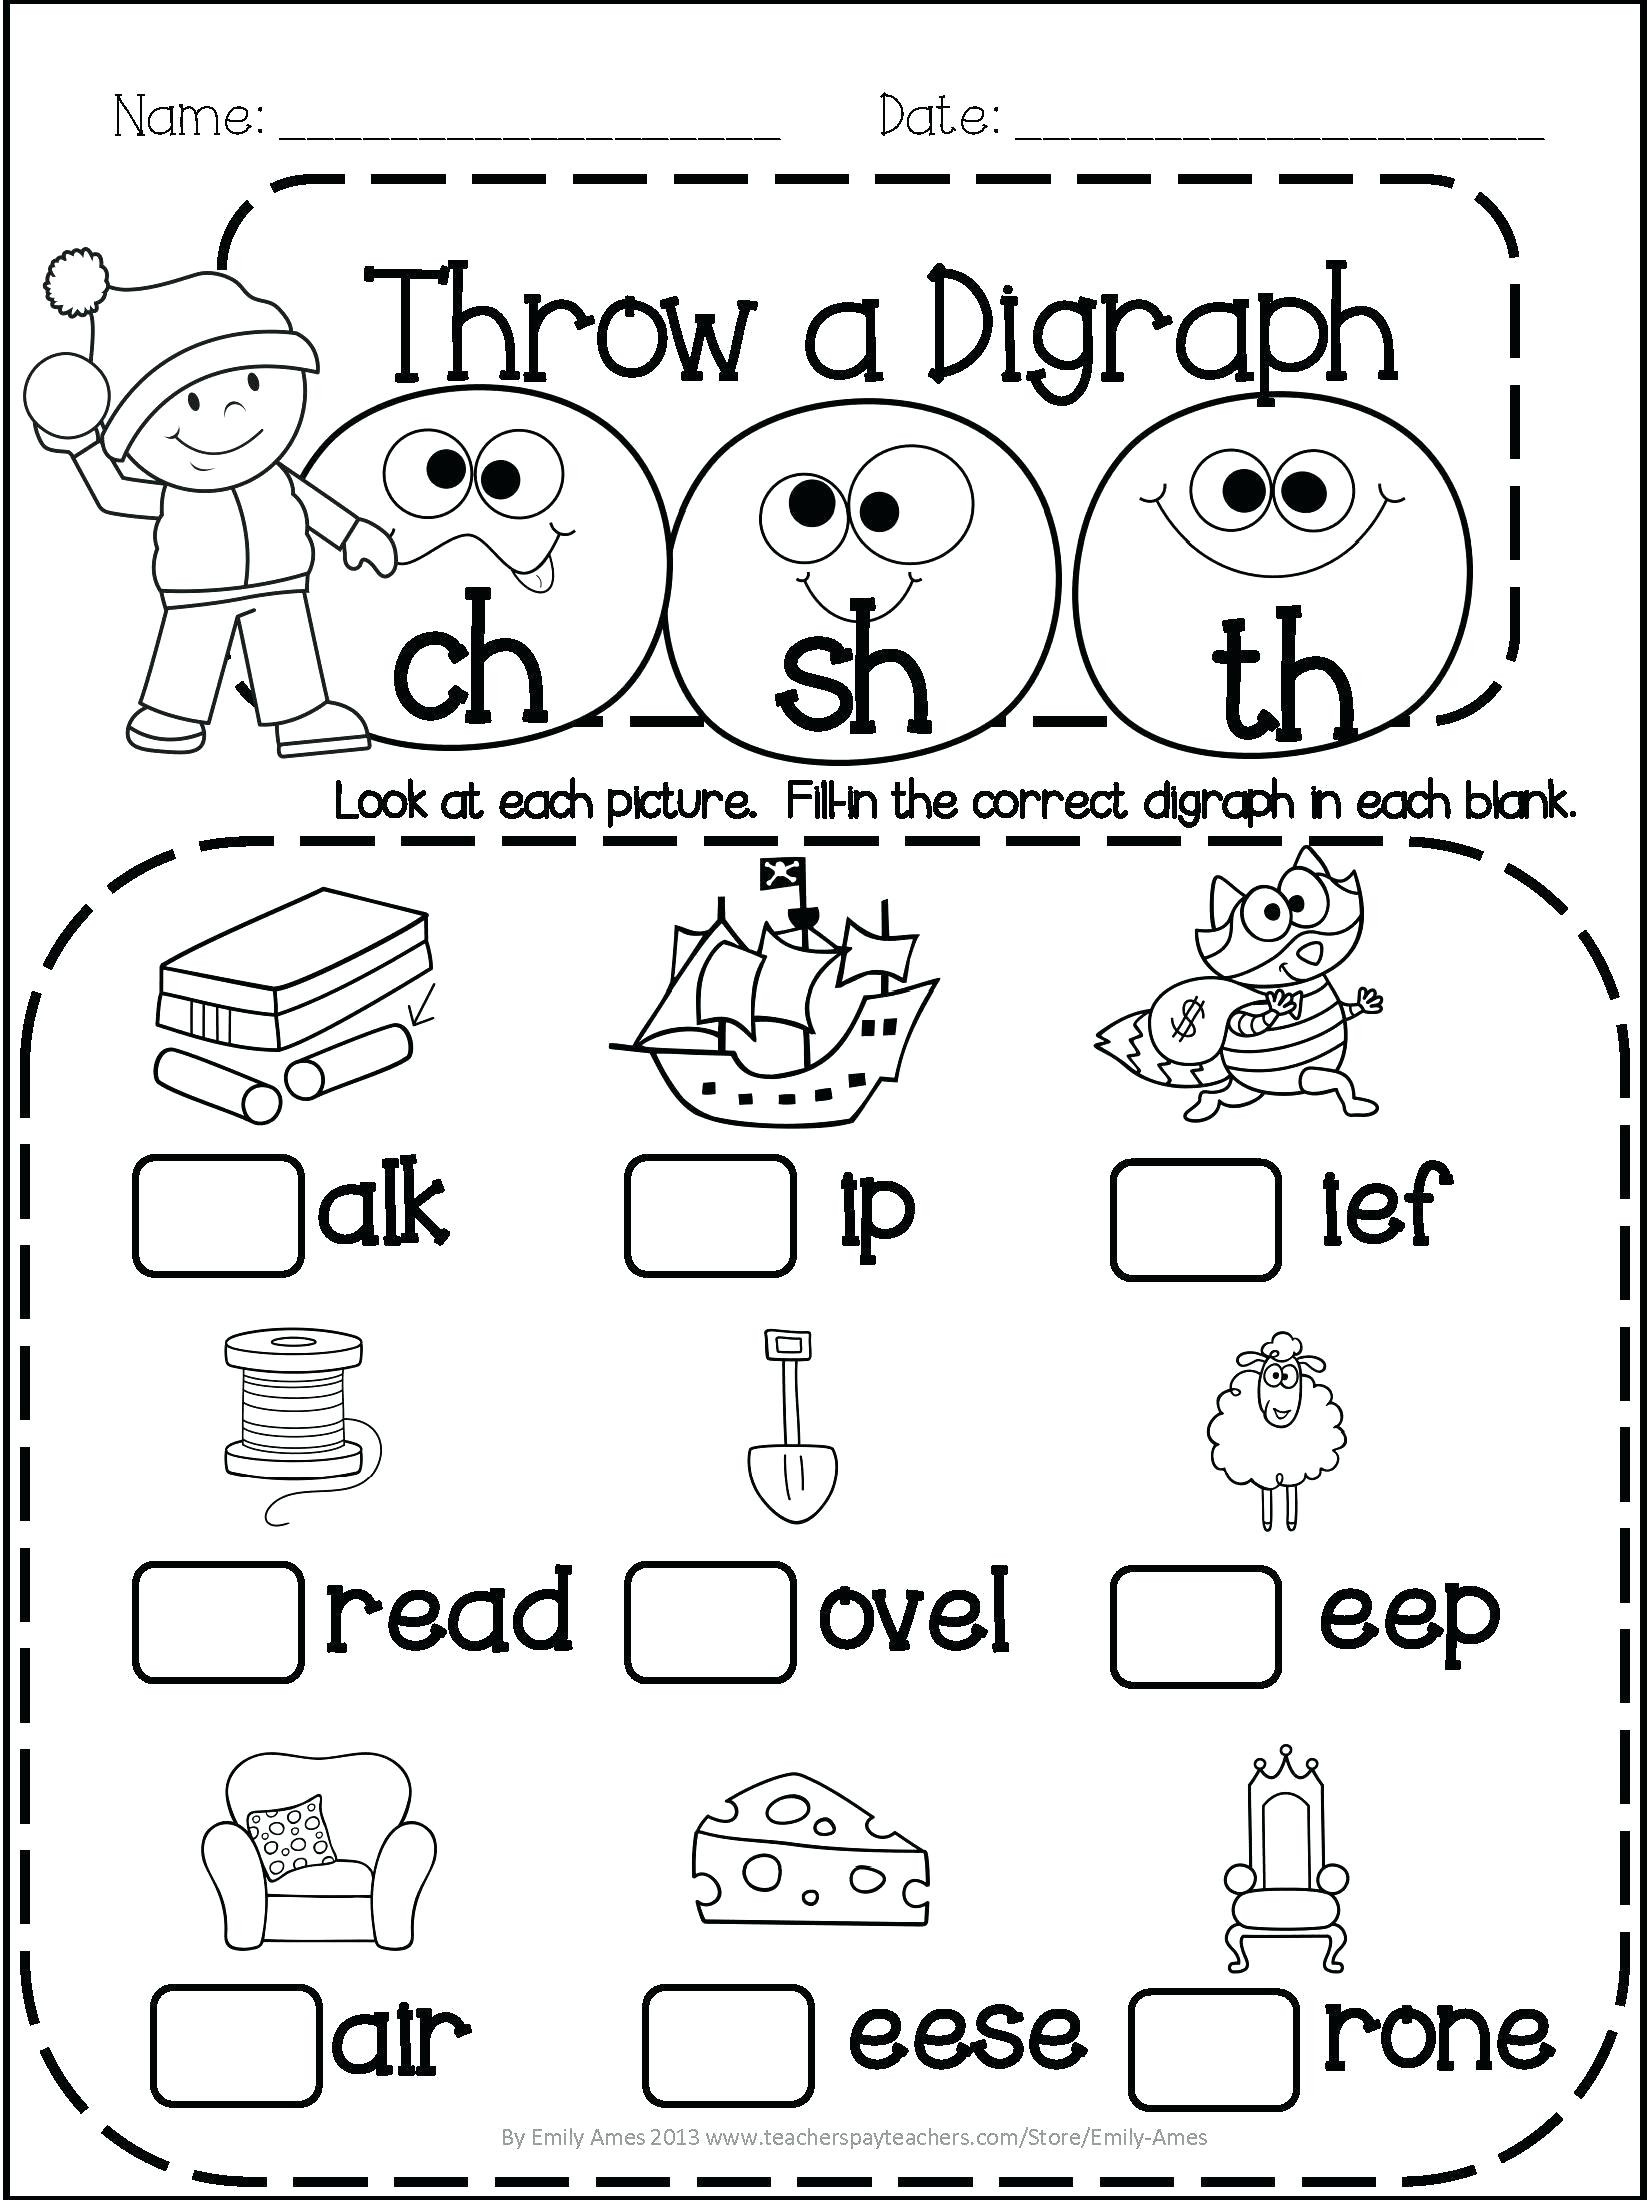 Saxon Math Worksheets 5th Grade Generationinitiative Free Printable Math Worksheets 5th